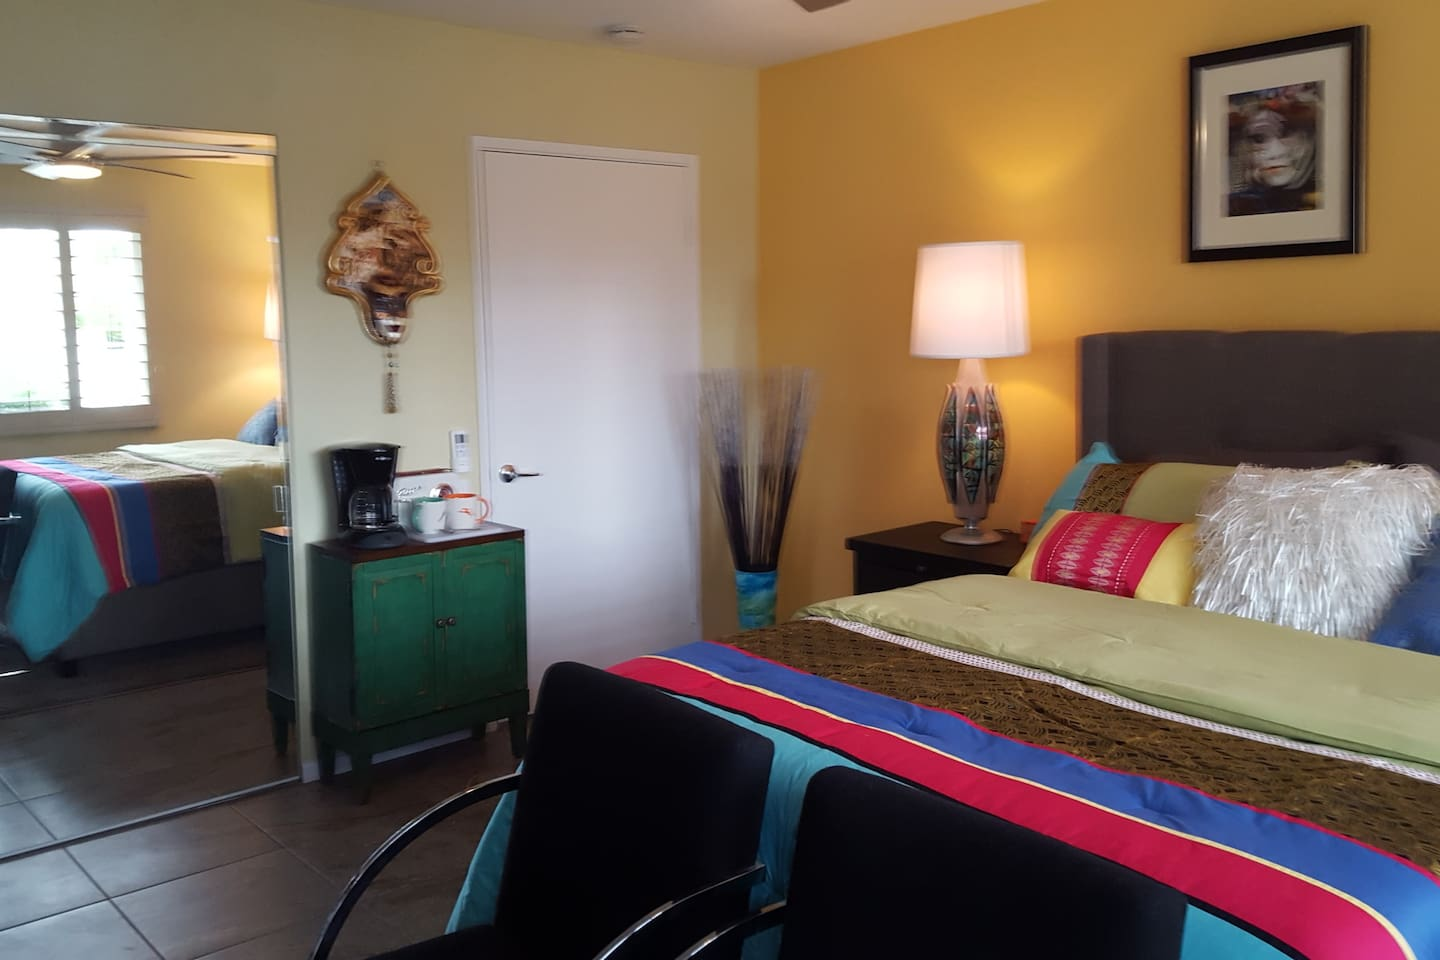 Colorful and fun room with a touch of Mardi Gras